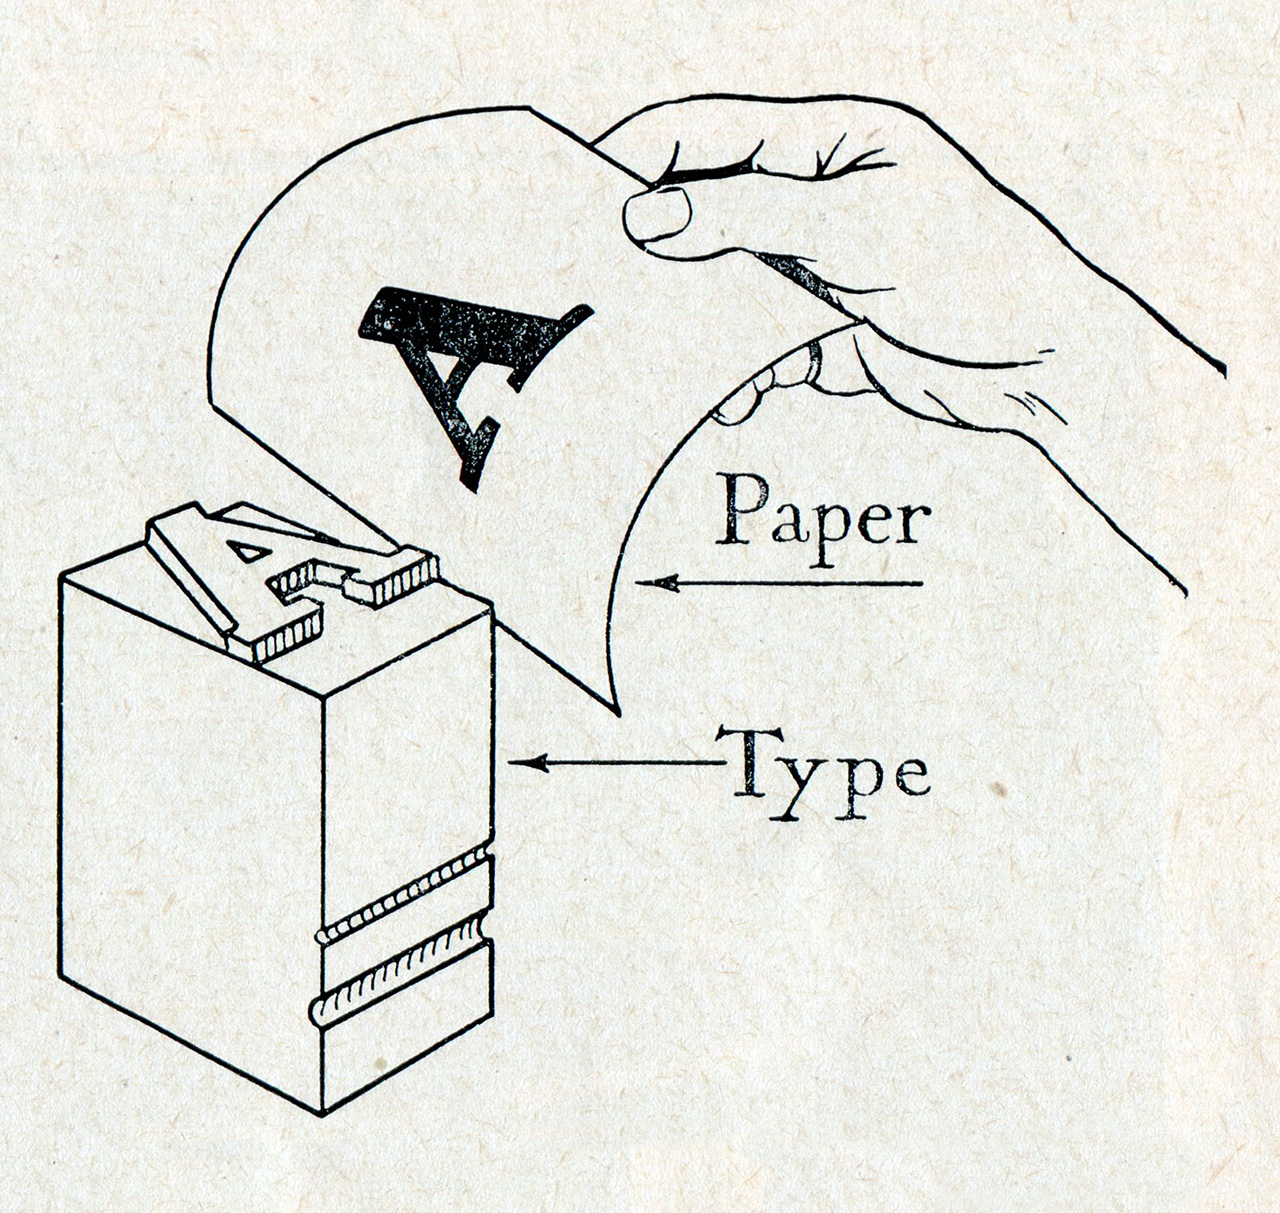 paper and type